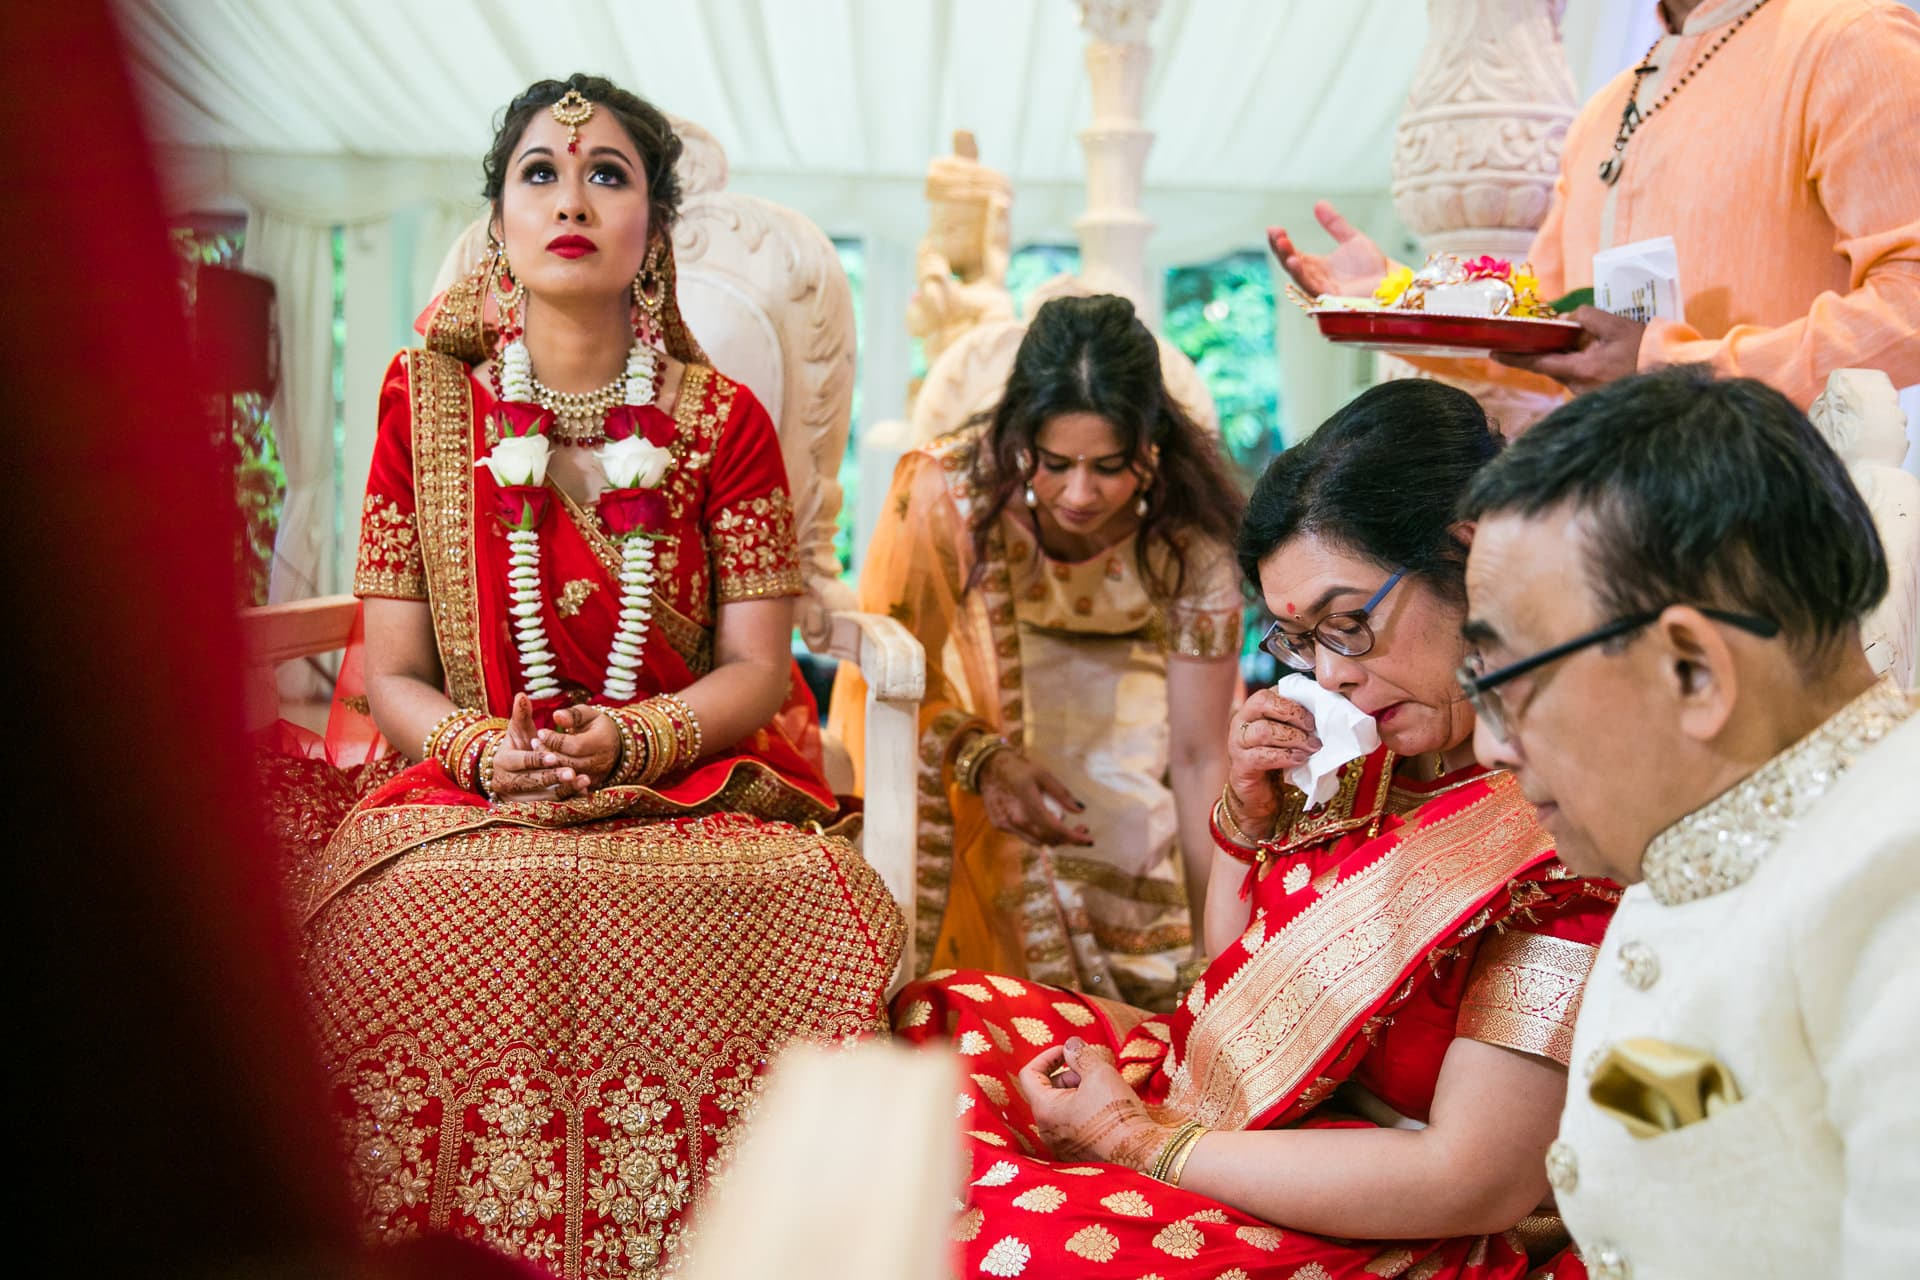 Emotional moment during the Hindu wedding ceremony